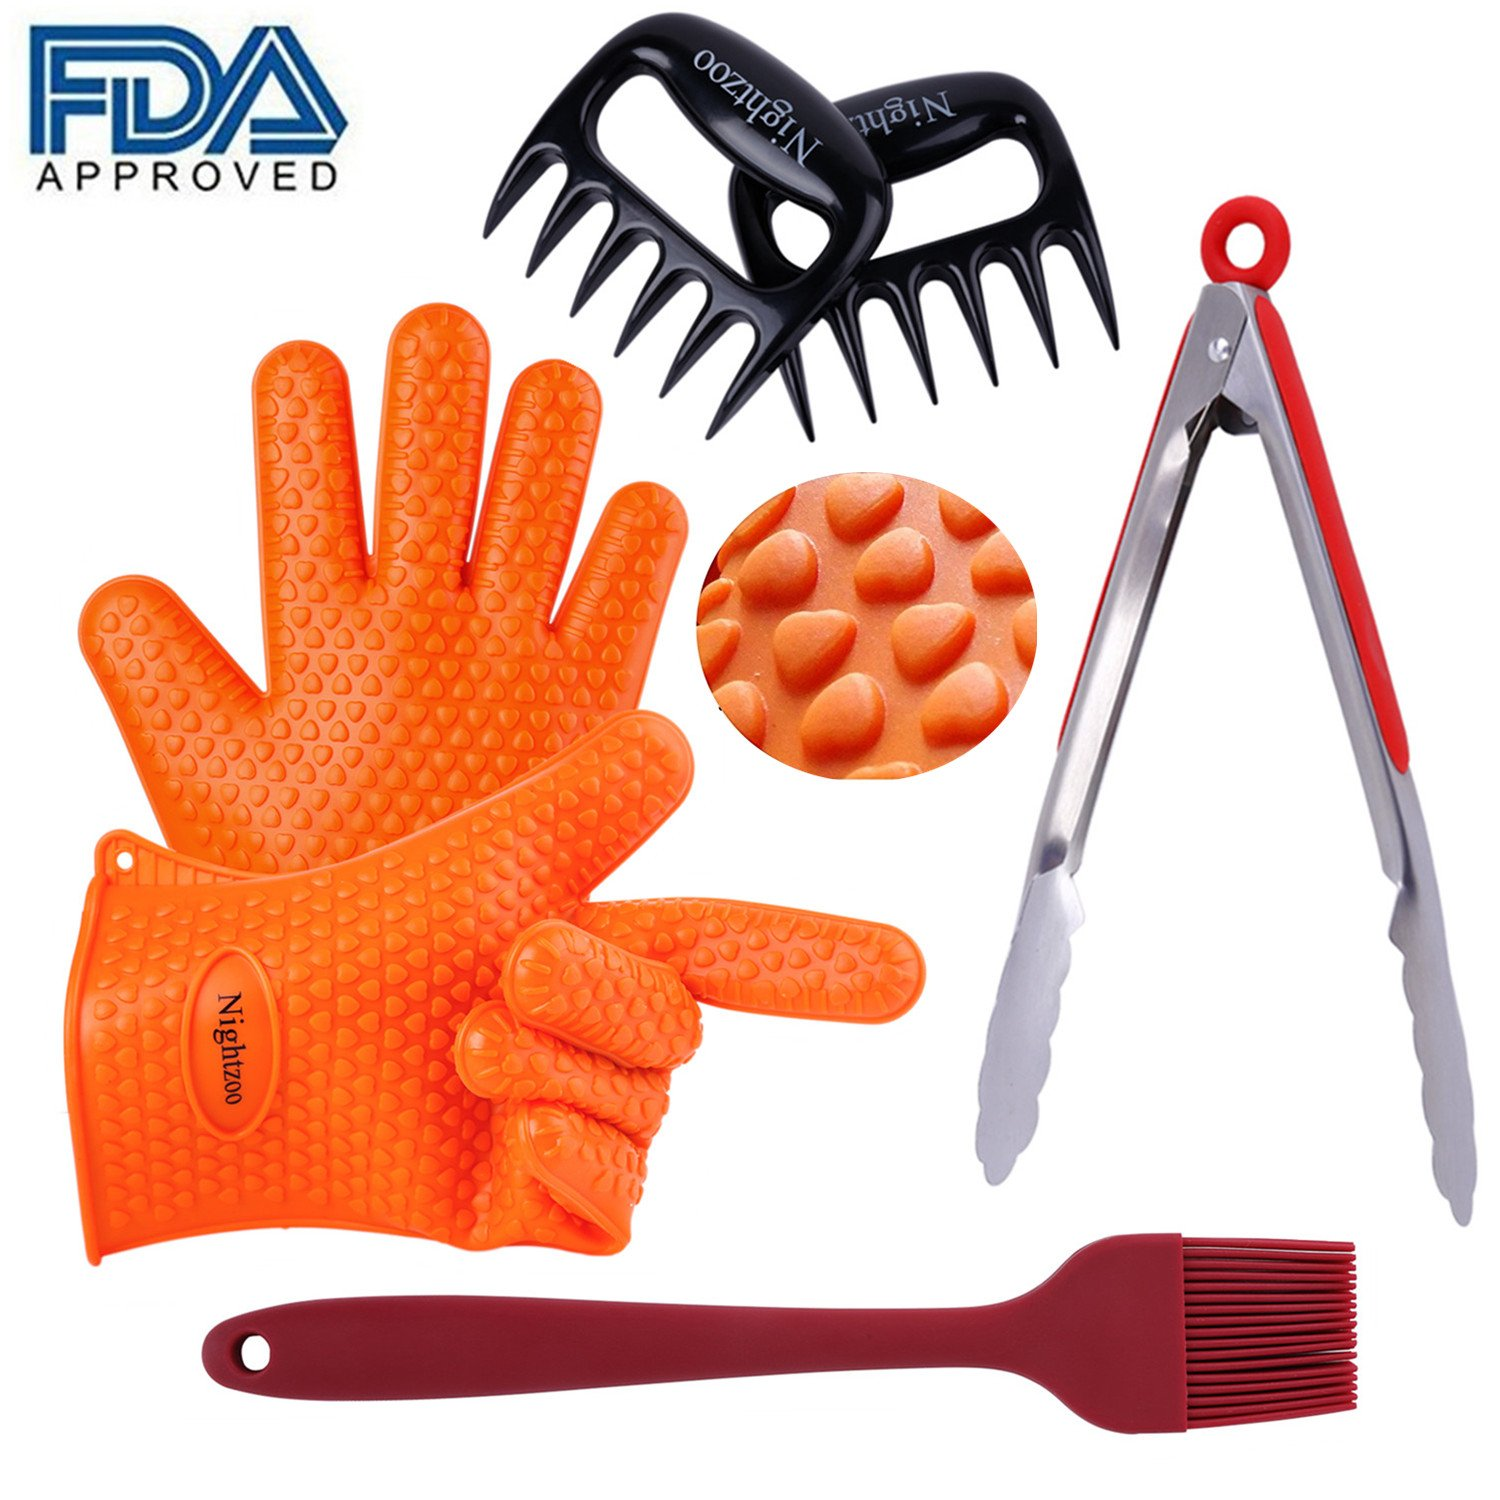 Nightzoo BBQ Grill Tools Set 2 Silicone BBQ Gloves & 2 BBQ Meat Shredder Claws Sets & Grill Silicone Brush and Stainless Steel Cooking Tongs,Super Value of 6 Barbecue Accessories (6pcs)